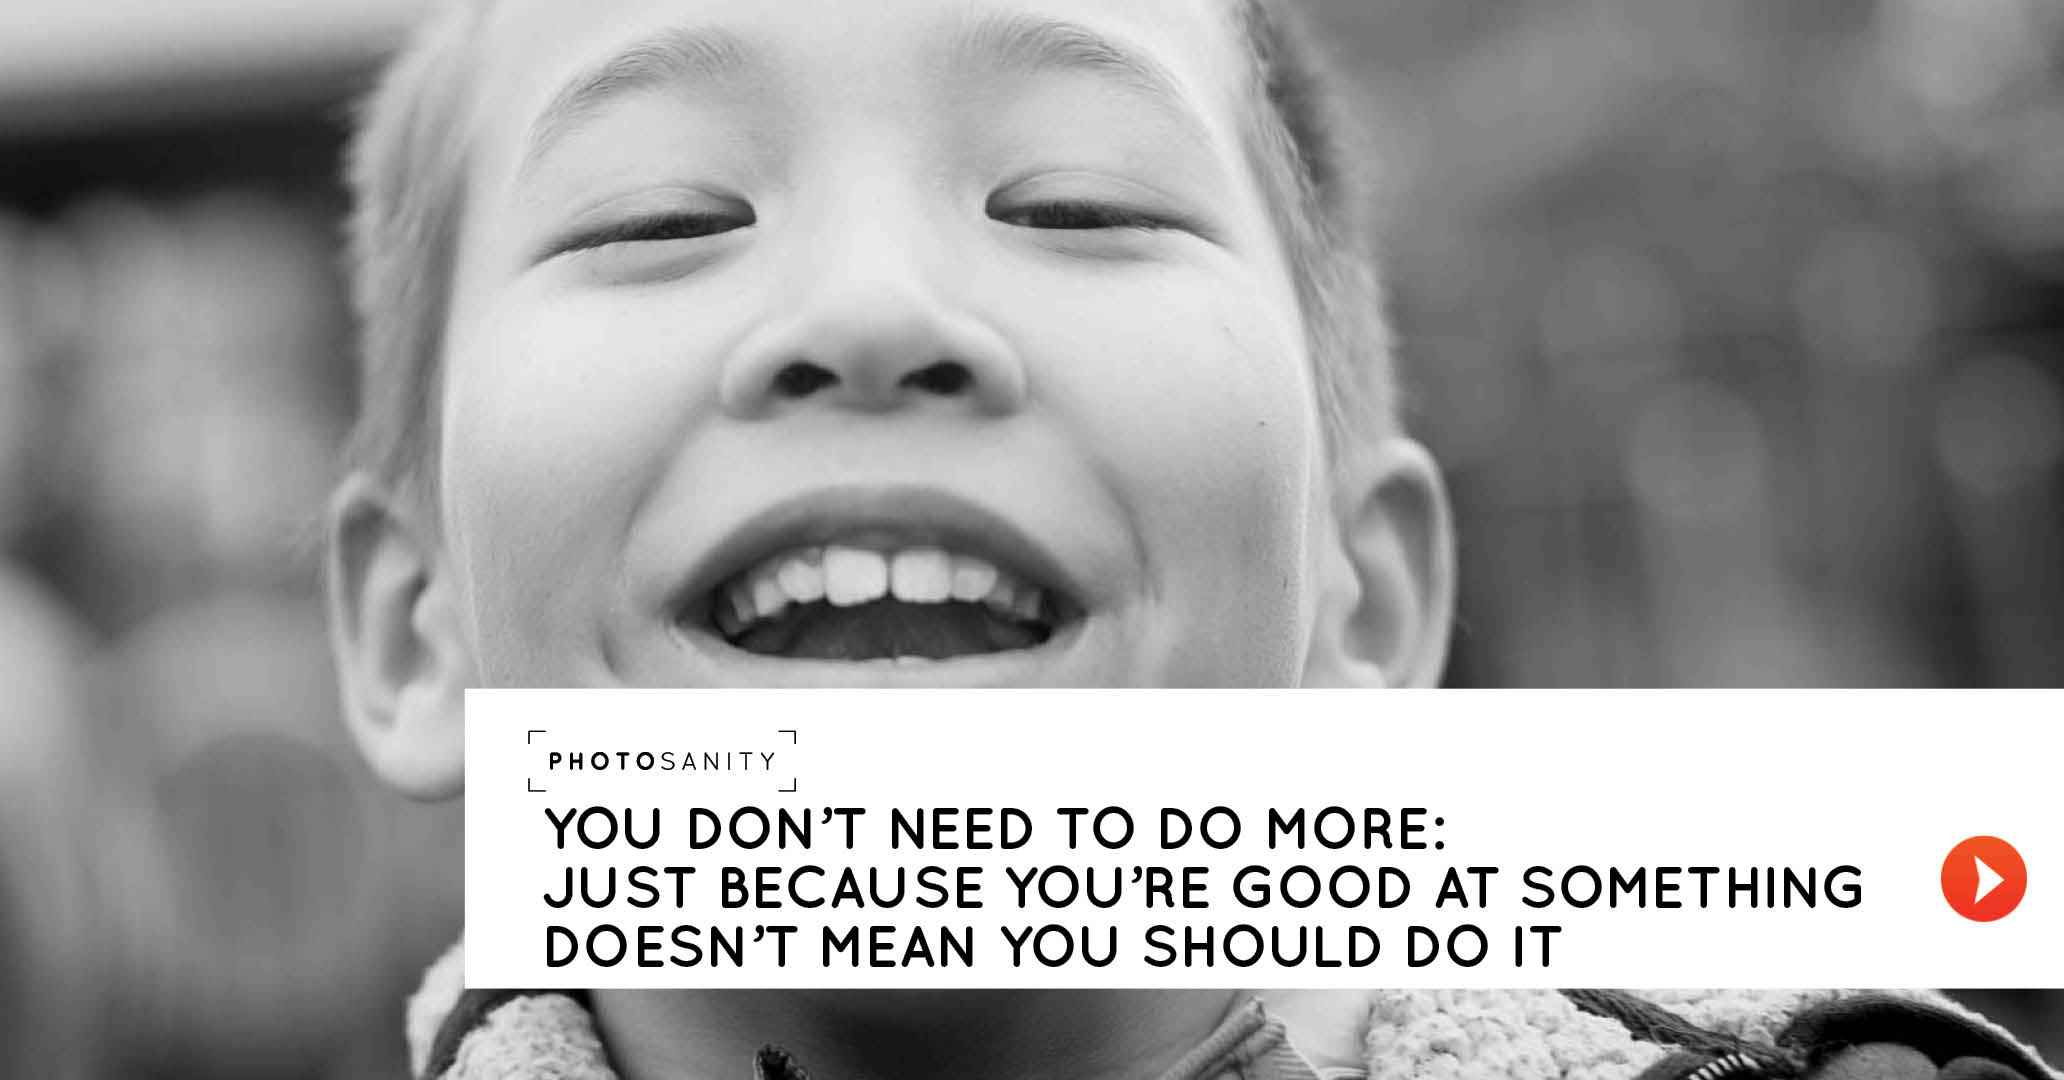 You don't need to do more: just because you're good at something doesn't mean you should do it (part 3 of 4)